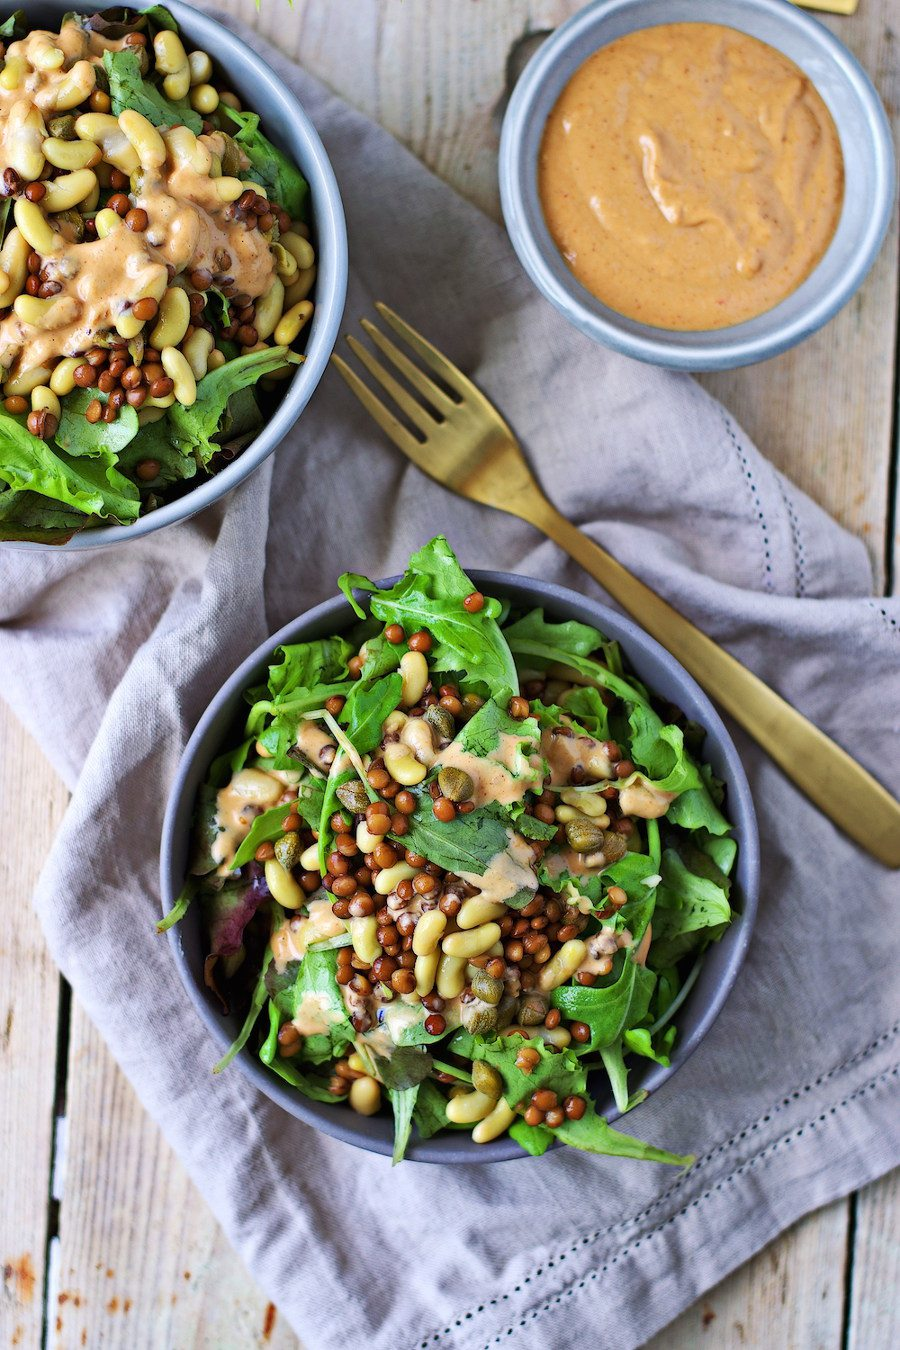 High Protein Salad with Green Kidney Beans and Lentils. Here are 25 delicious vegan salads that will fill you up and have a healthy source of protein. Show your friends that not 'all vegans eat is rabbit food' with these unique and delicious twists on salads #vegan